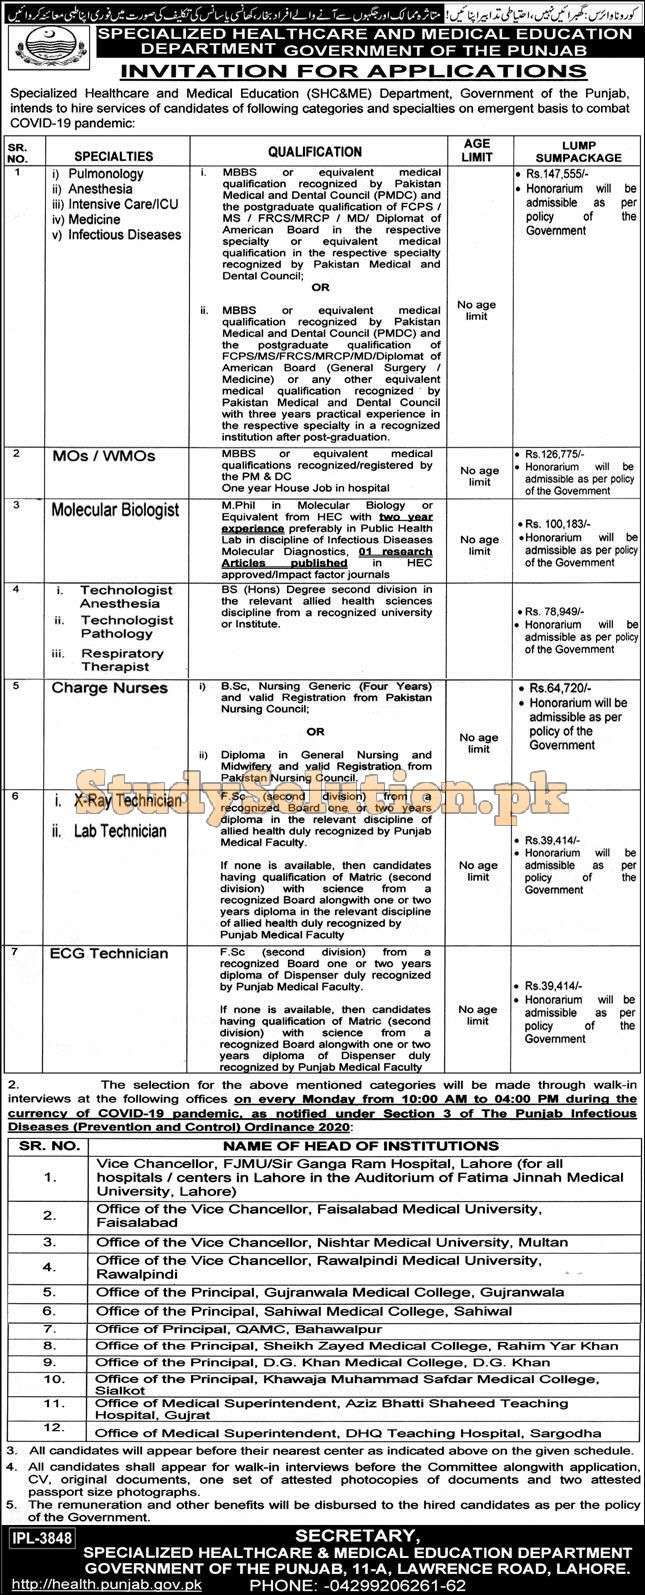 Specialized Healthcare And Medical Education Department 2020 Jobs